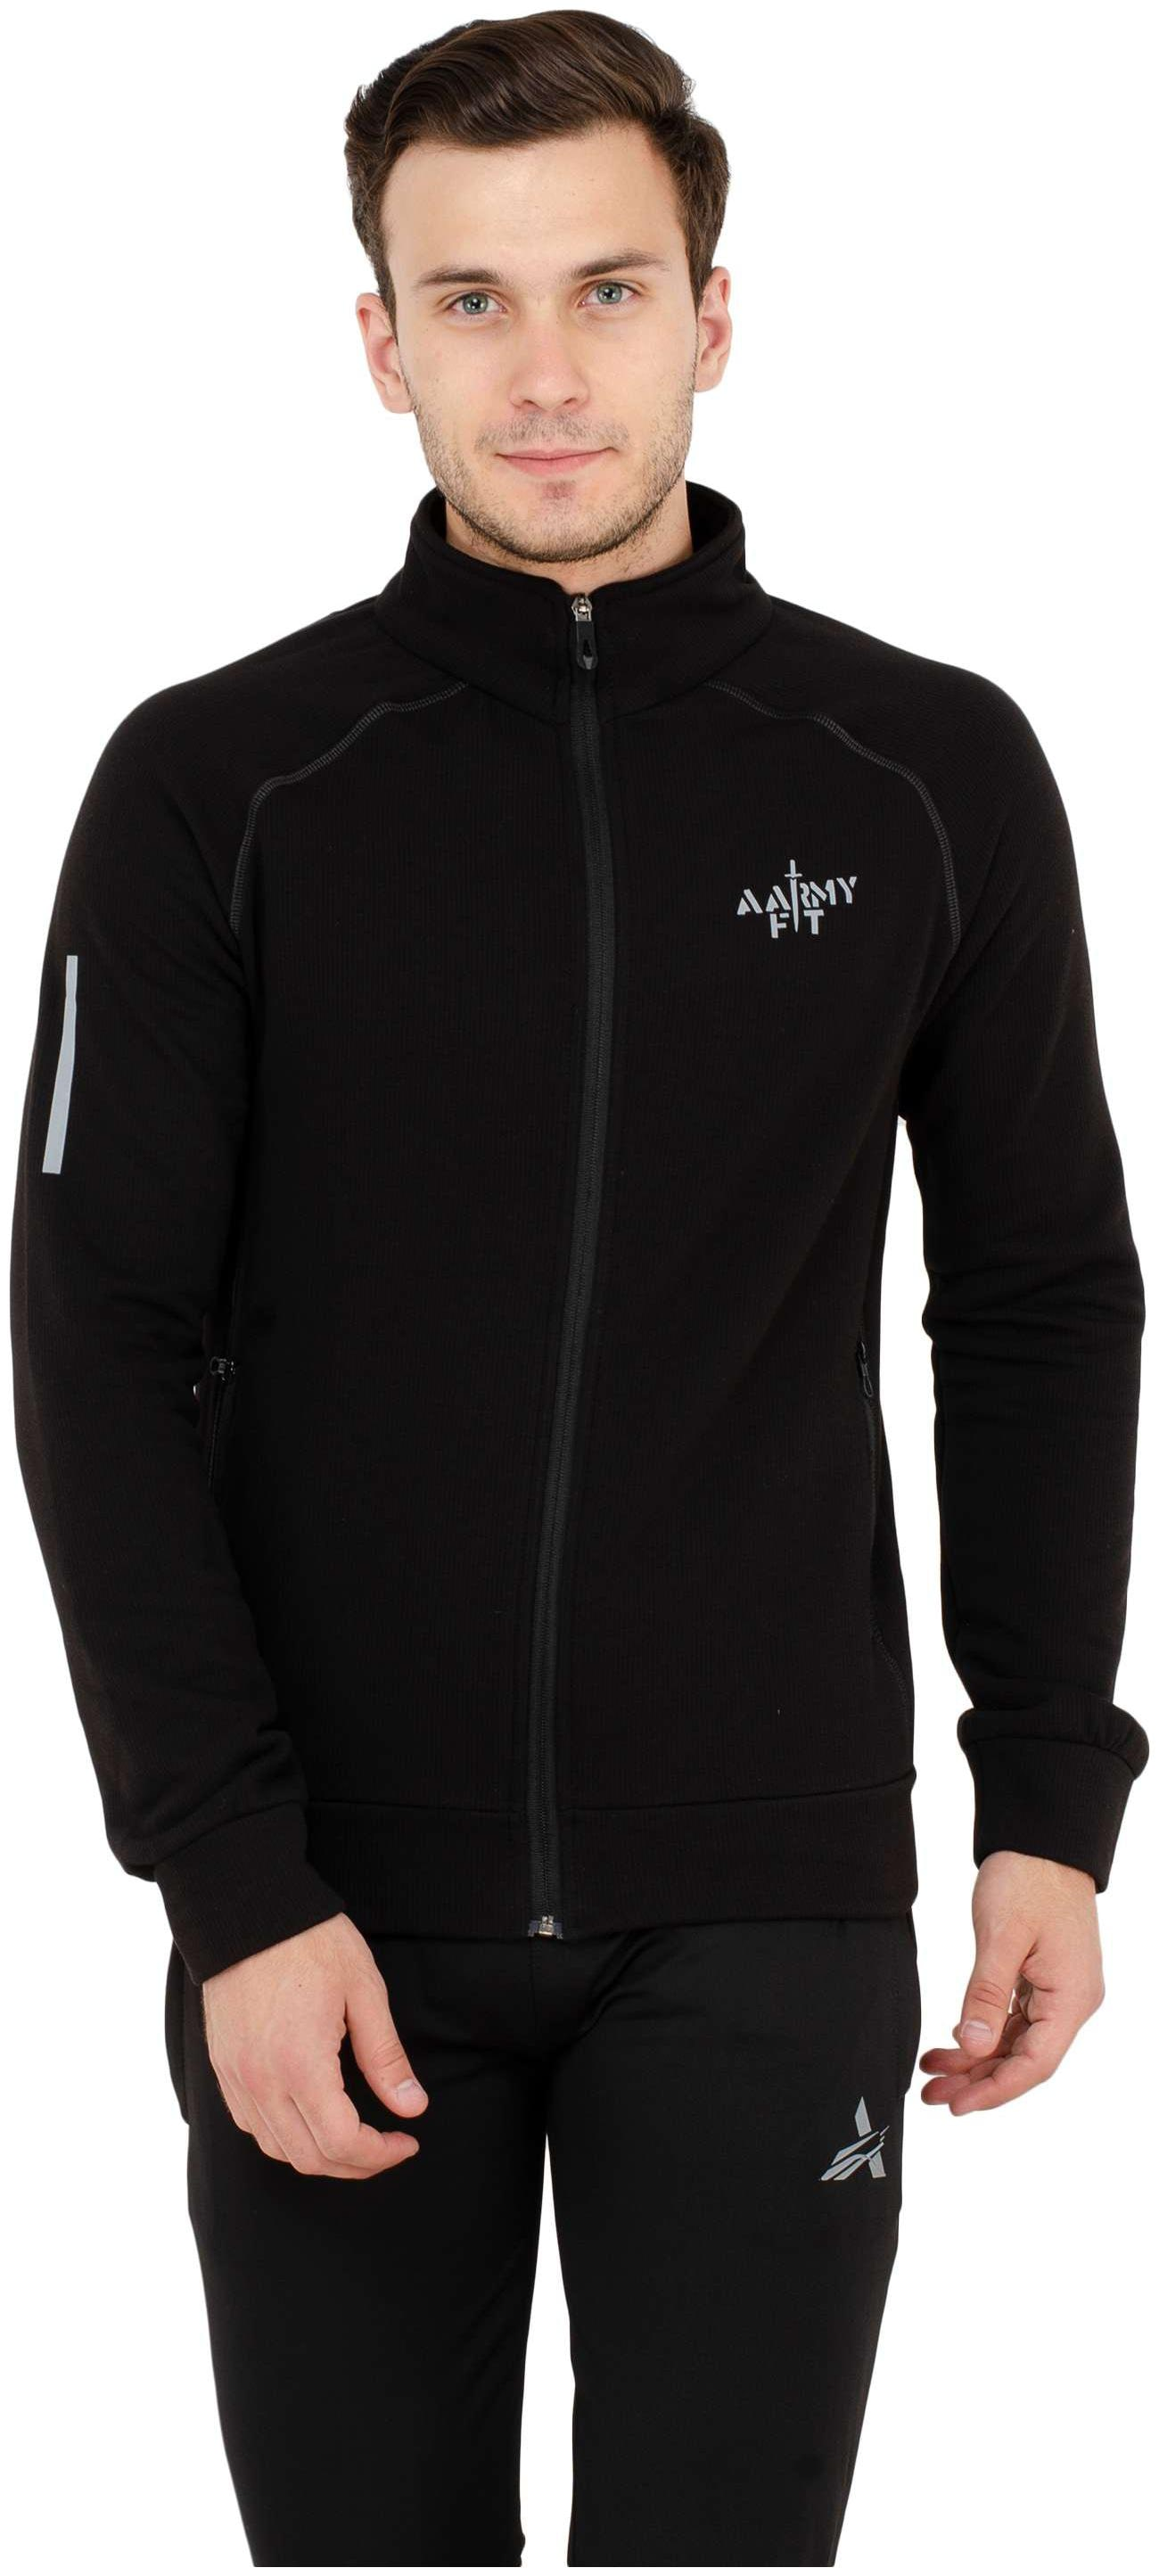 aarmy fit mesn sweatshirt